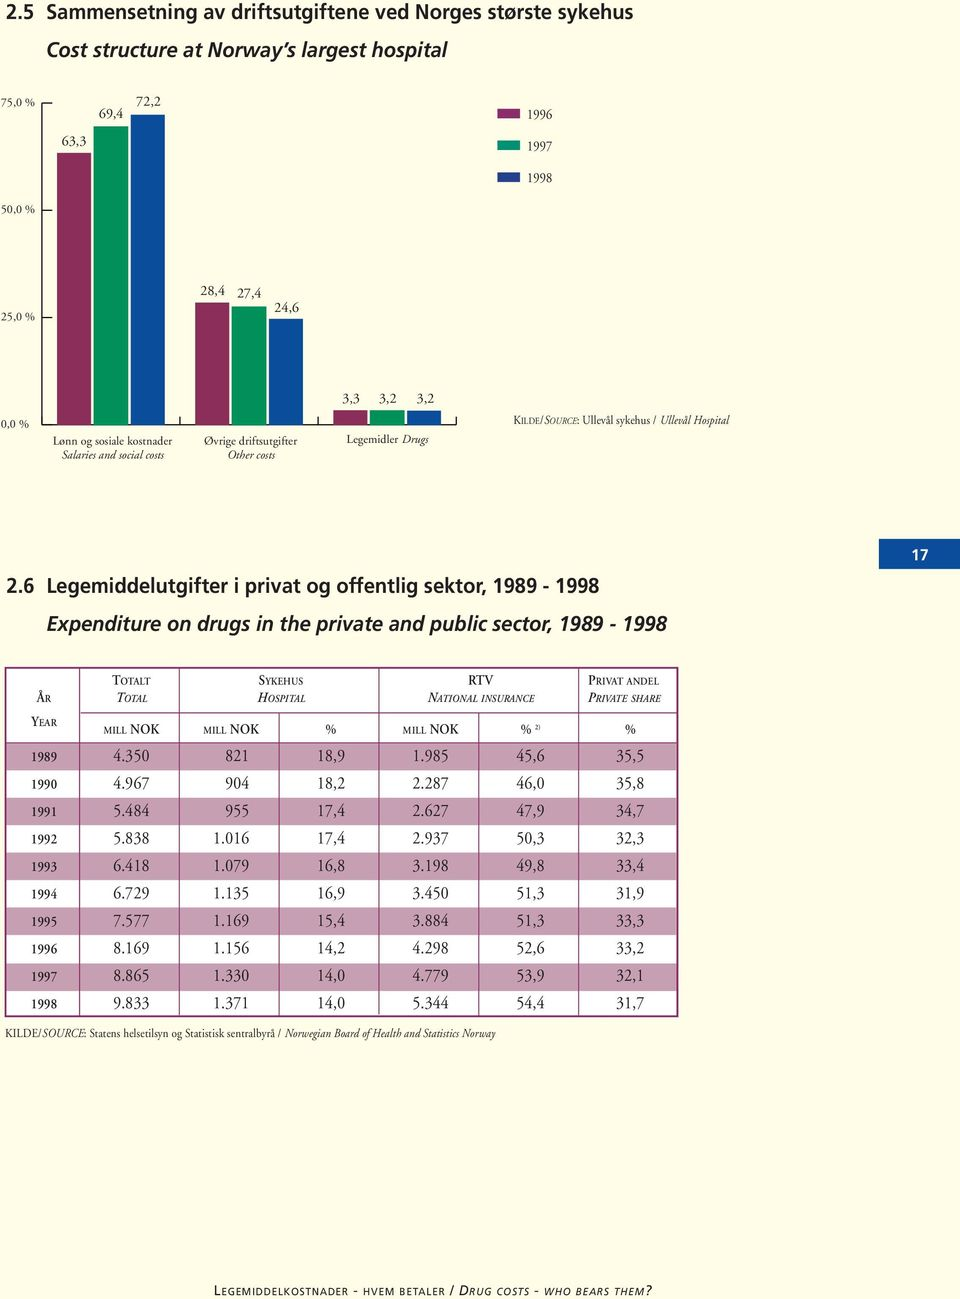 6 Legemiddelutgifter i privat og offentlig sektor, 1989-1998 Expenditure on drugs in the private and public sector, 1989-1998 17 TOTALT SYKEHUS RTV PRIVAT ANDEL ÅR TOTAL HOSPITAL NATIONAL INSURANCE